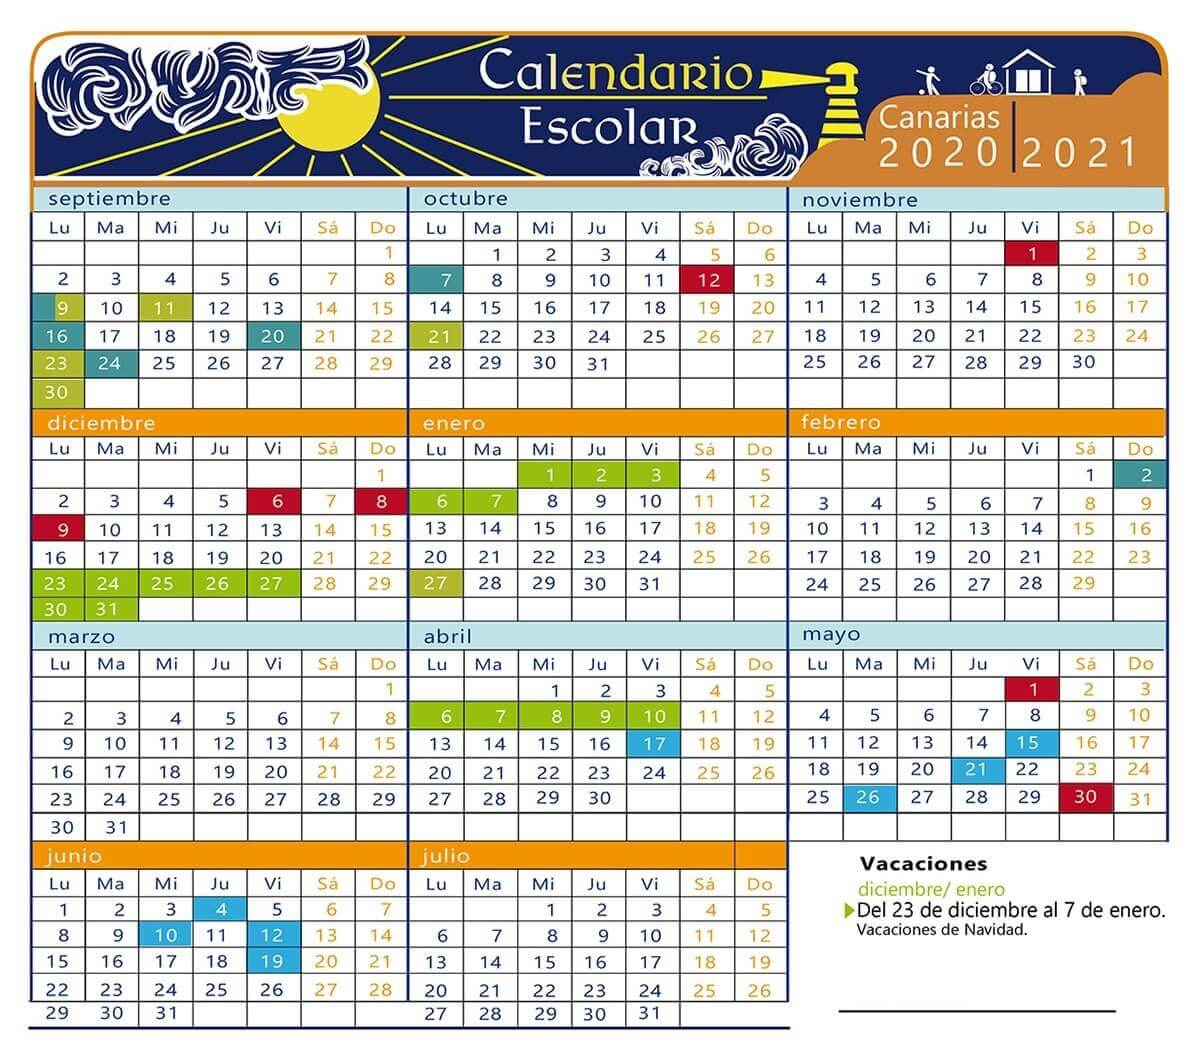 Calendario Bolsa Familia 2019 Final 8.Calendario Escolar 2019 2020 En Islas Canarias